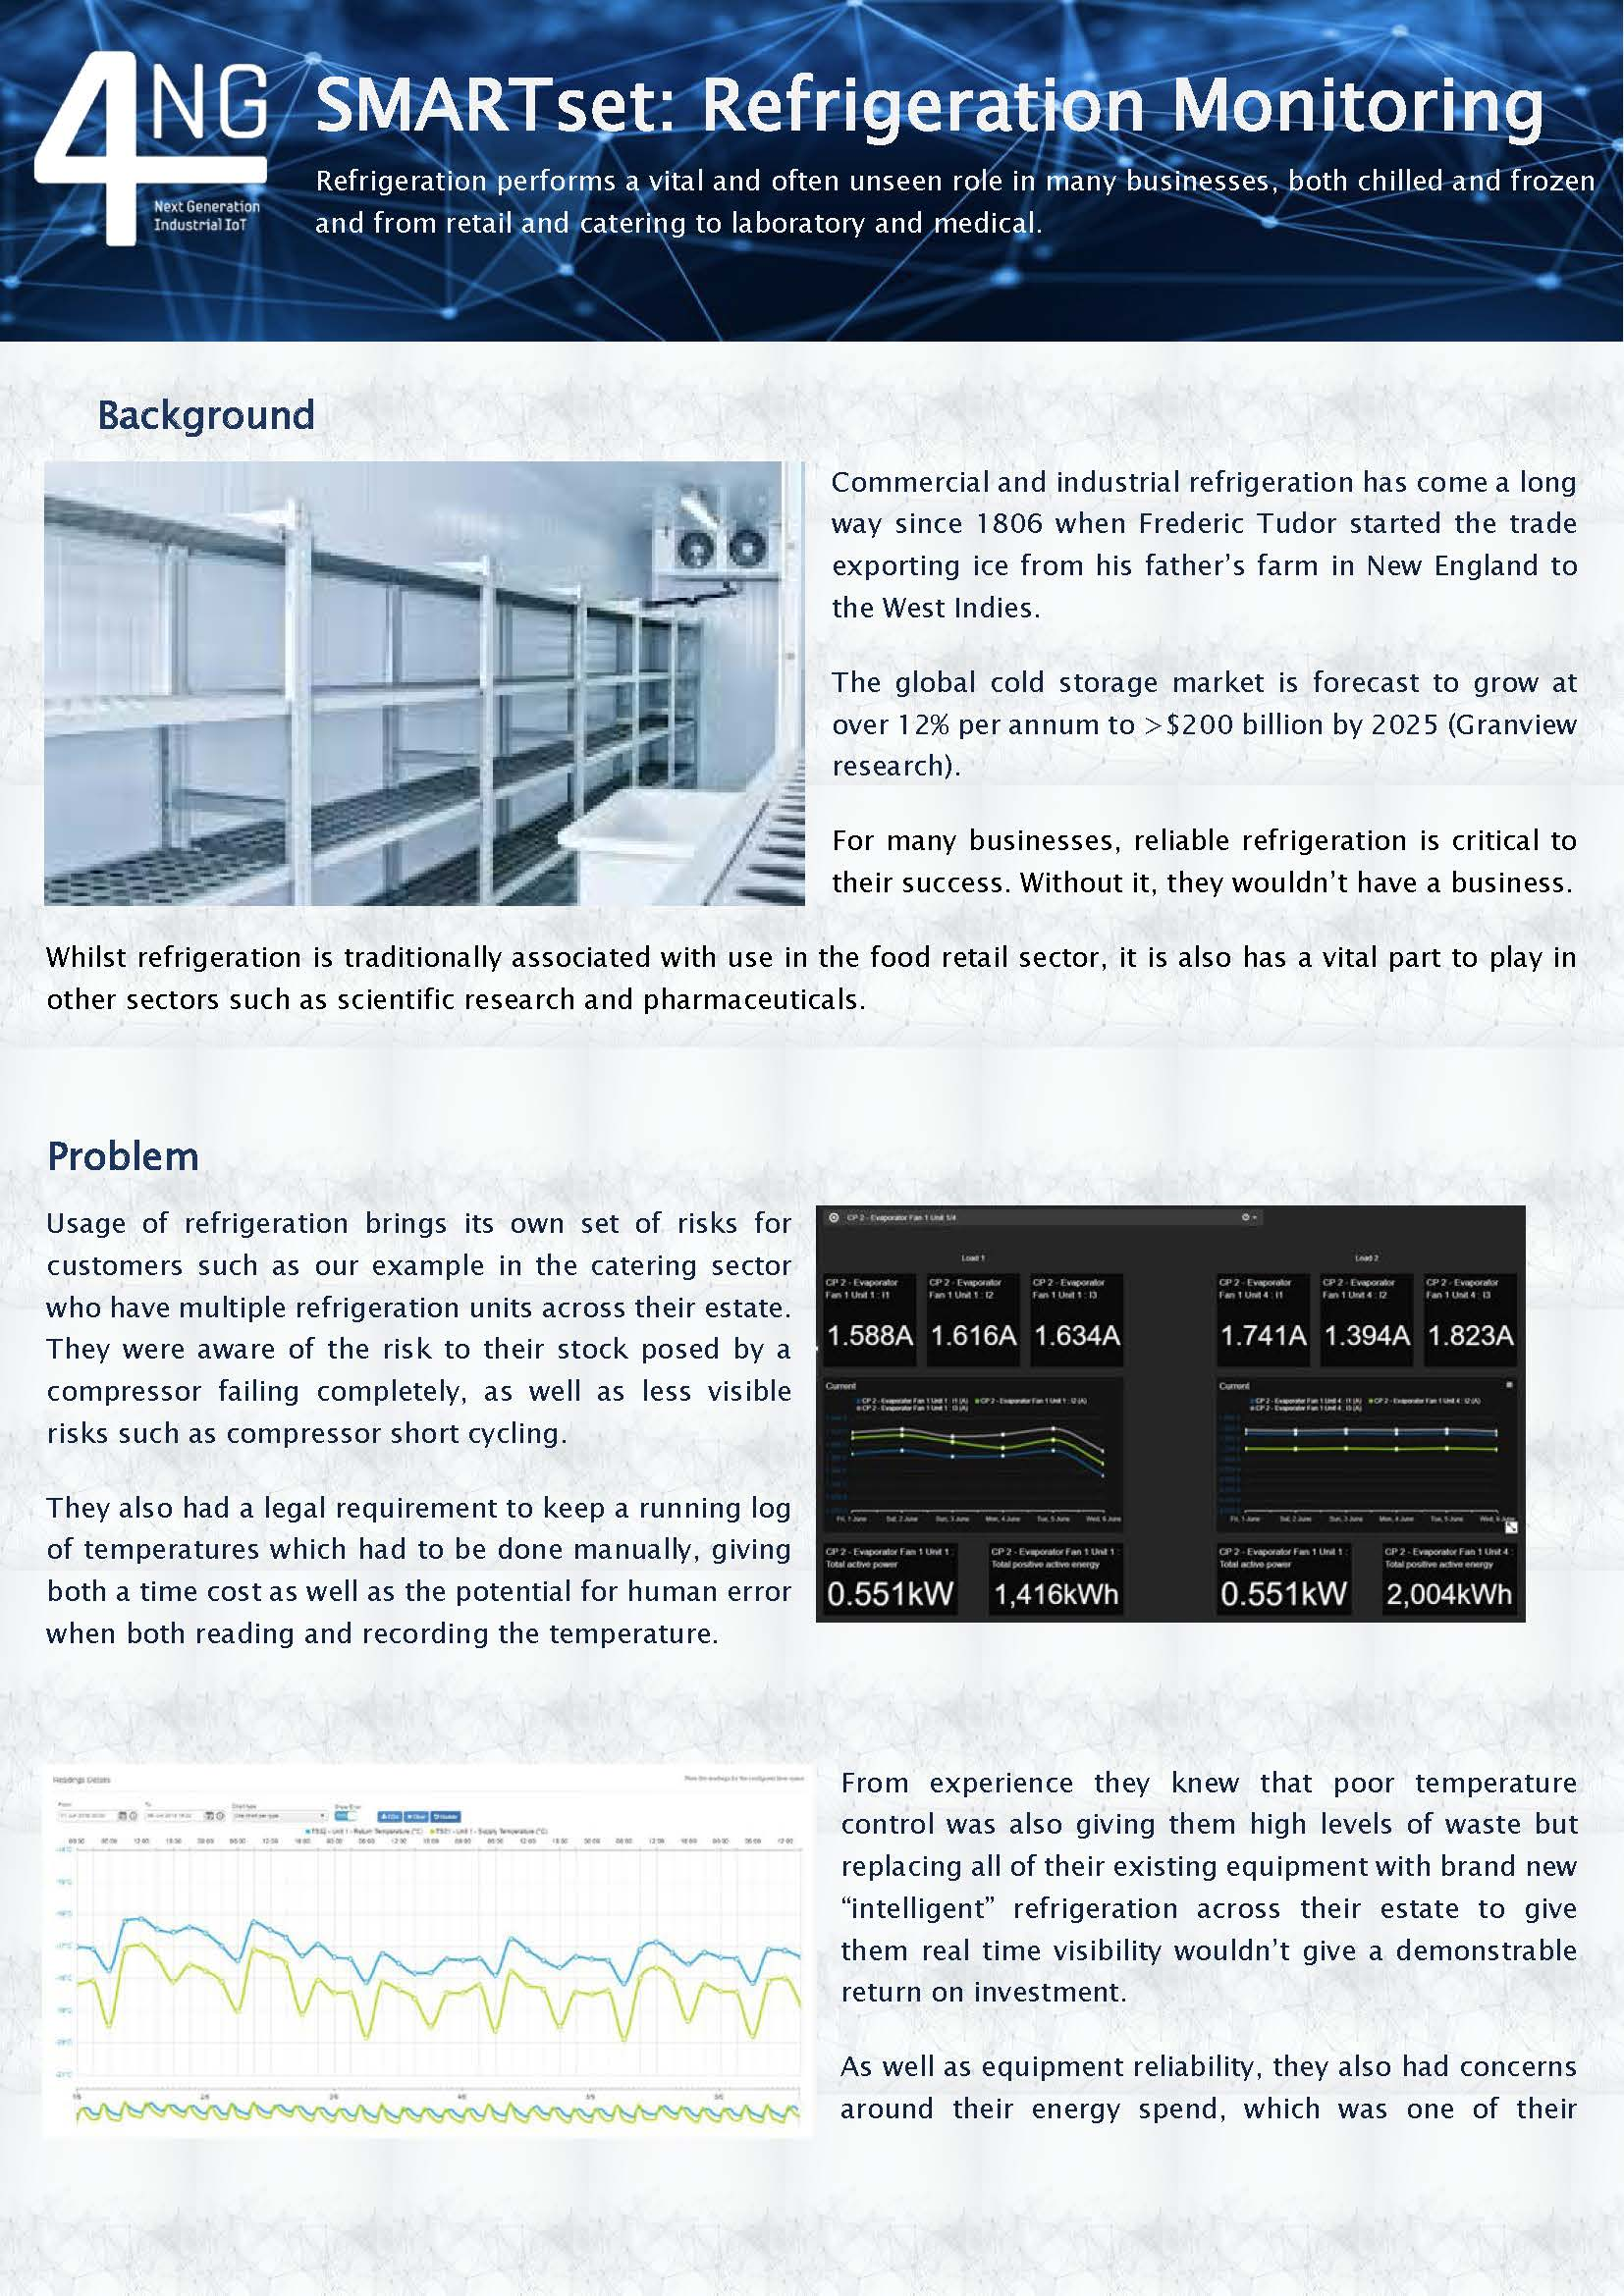 Refrigeration Monitoring Use Case